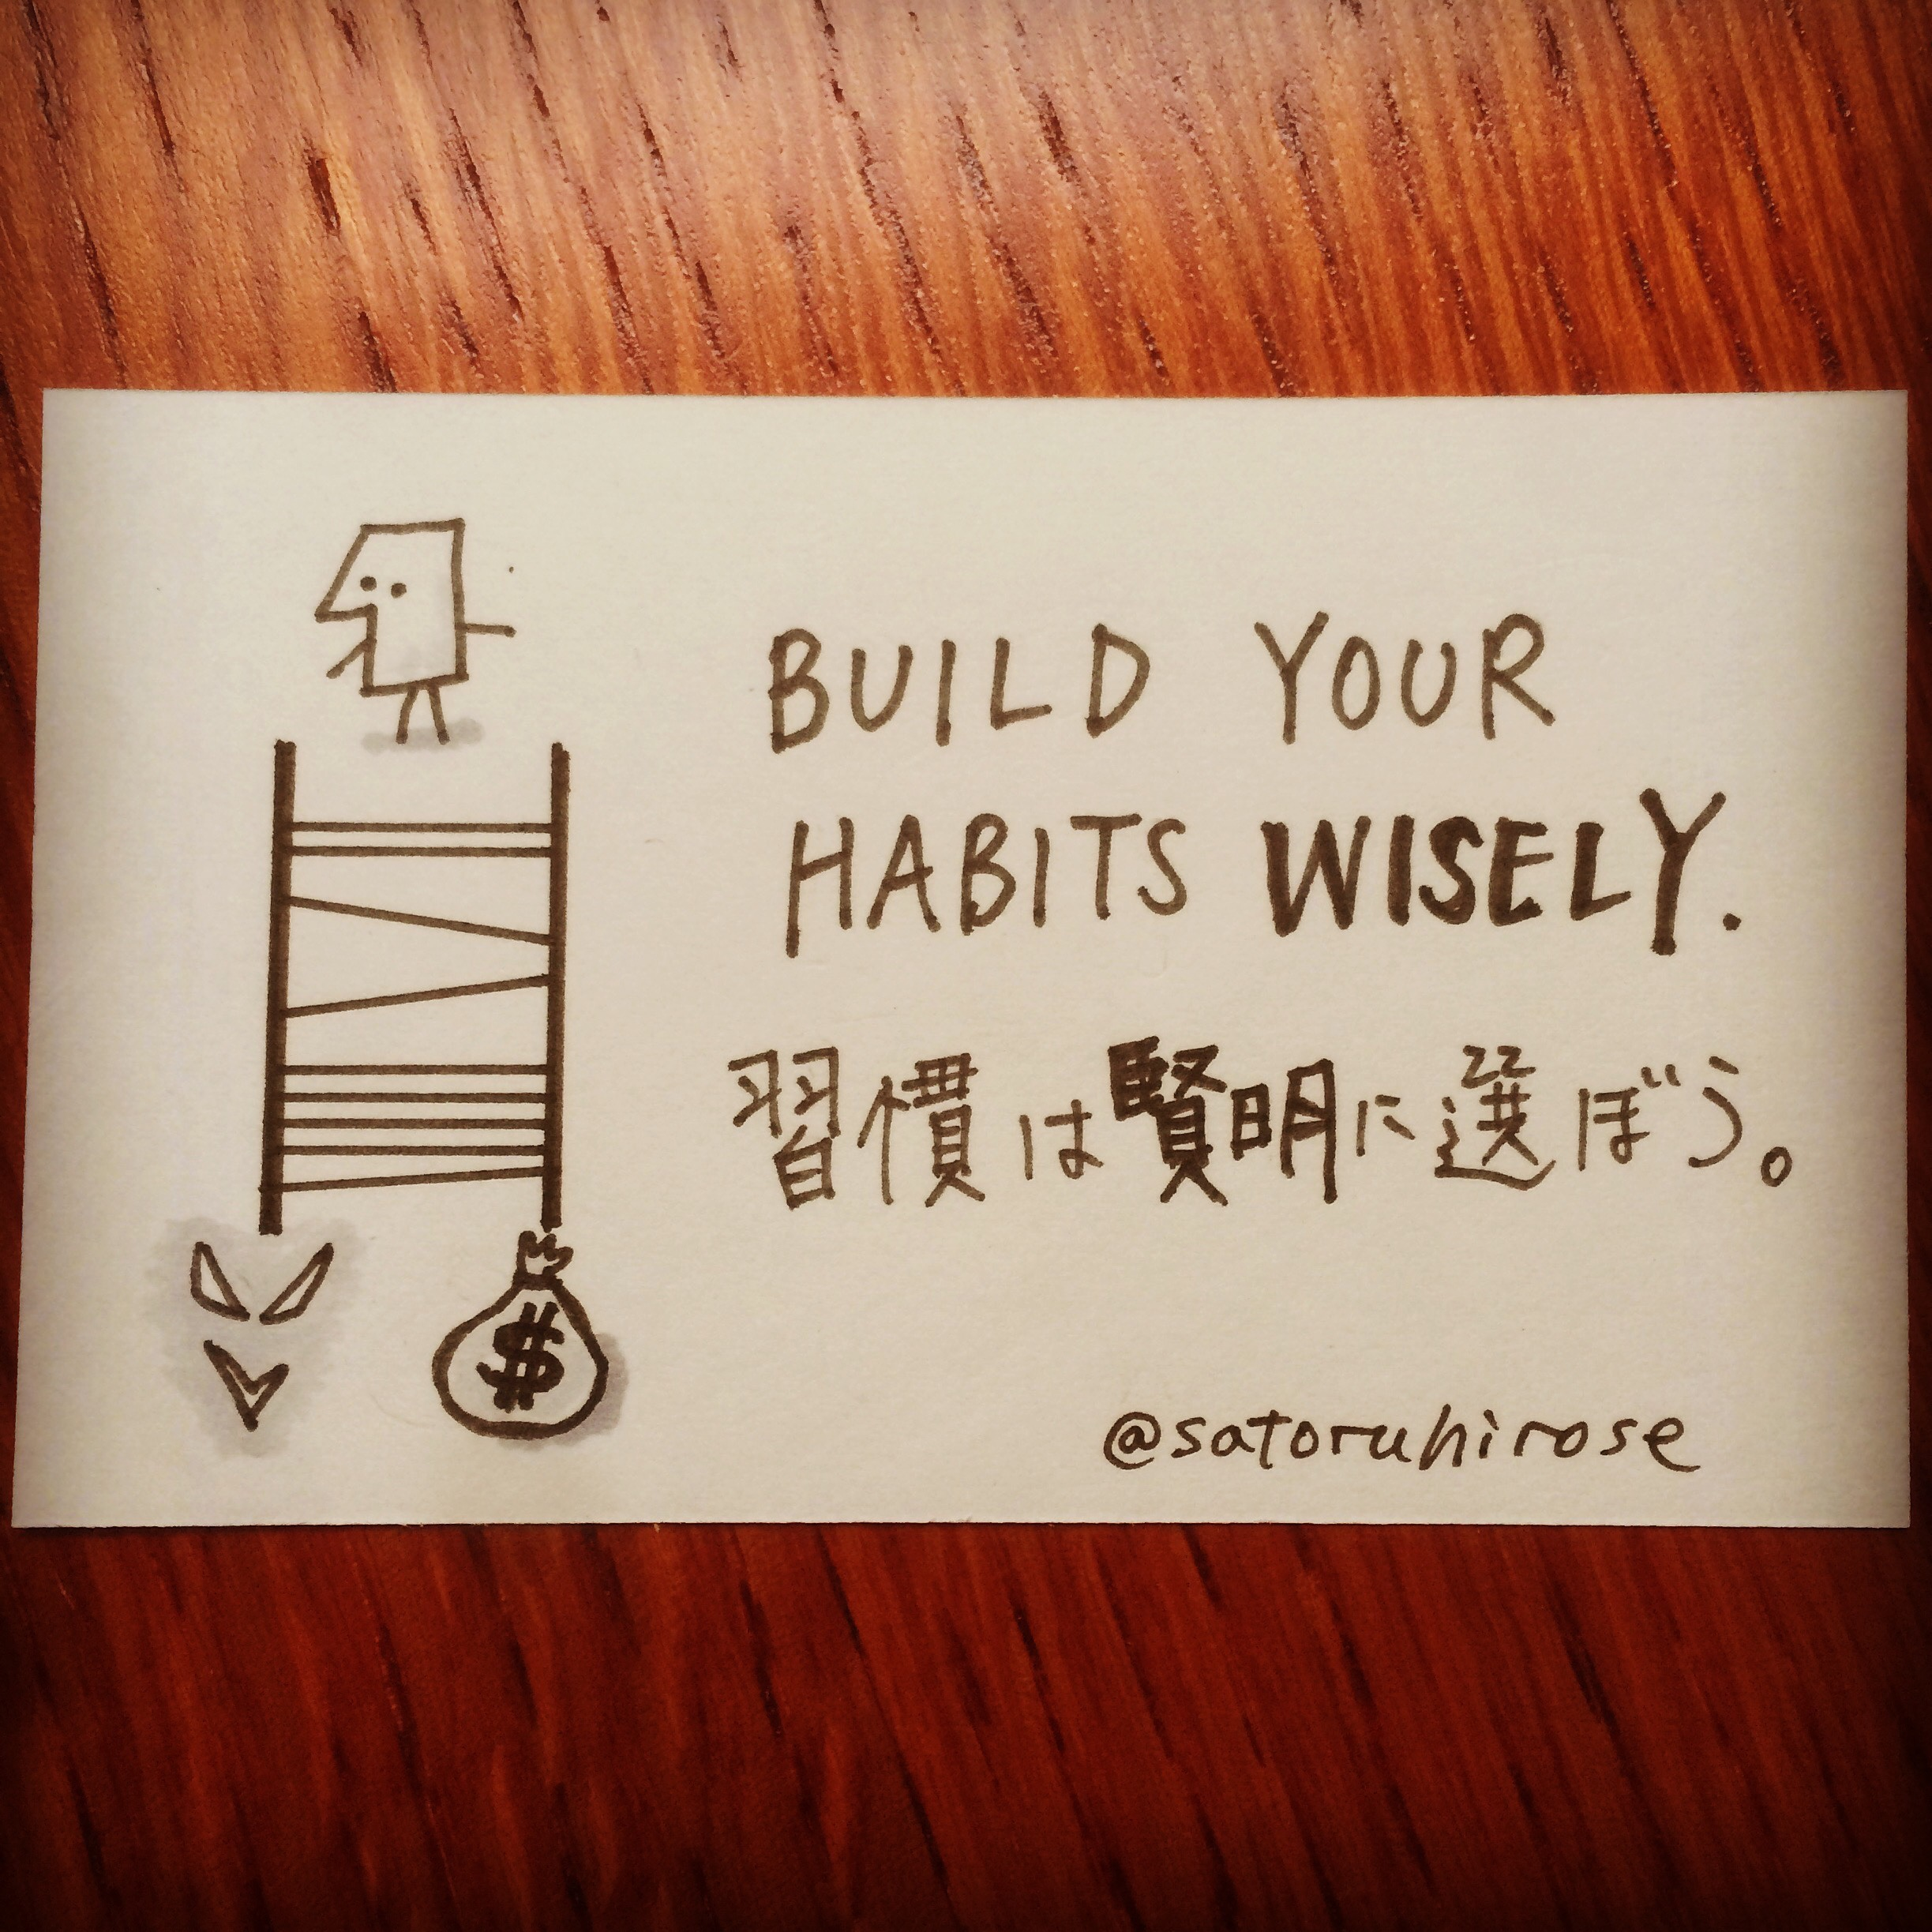 Build your habit wisely.